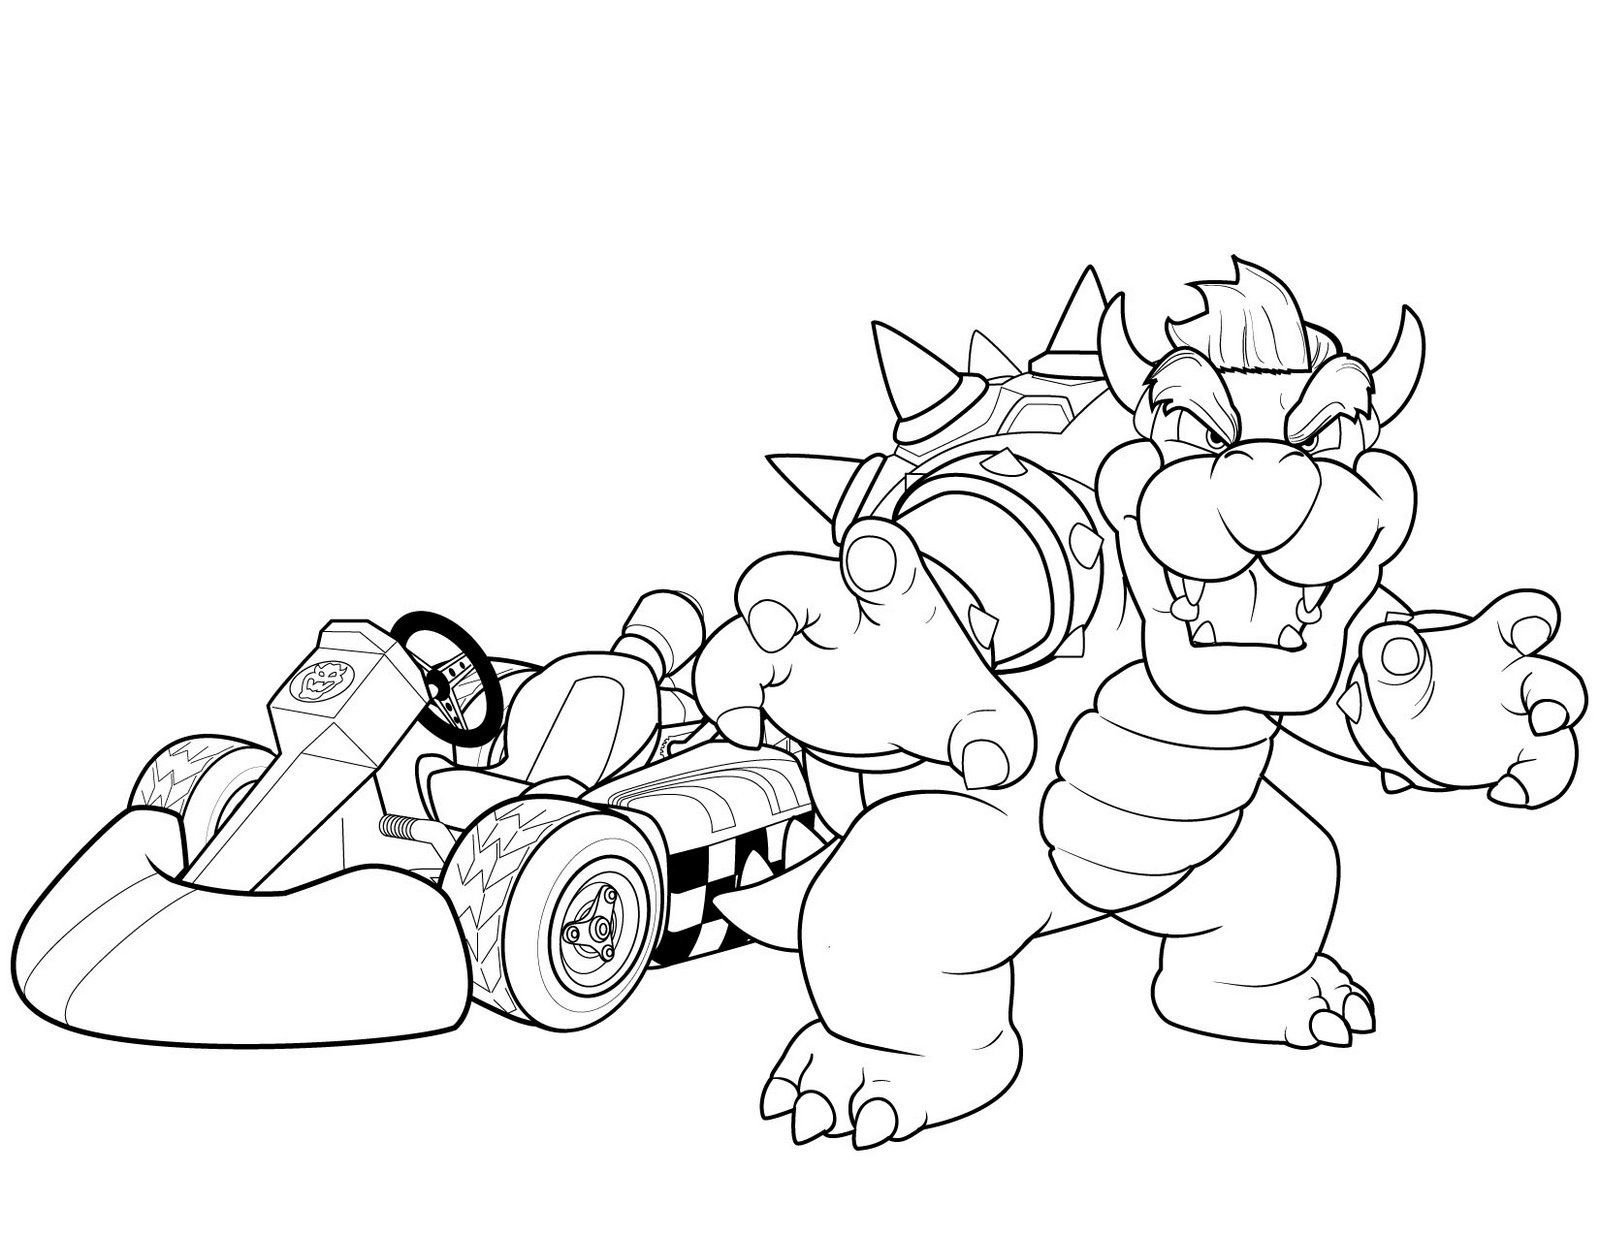 Bowser Coloring Pages Best Coloring Pages For Kids Mario Coloring Pages Super Mario Coloring Pages Coloring Pages